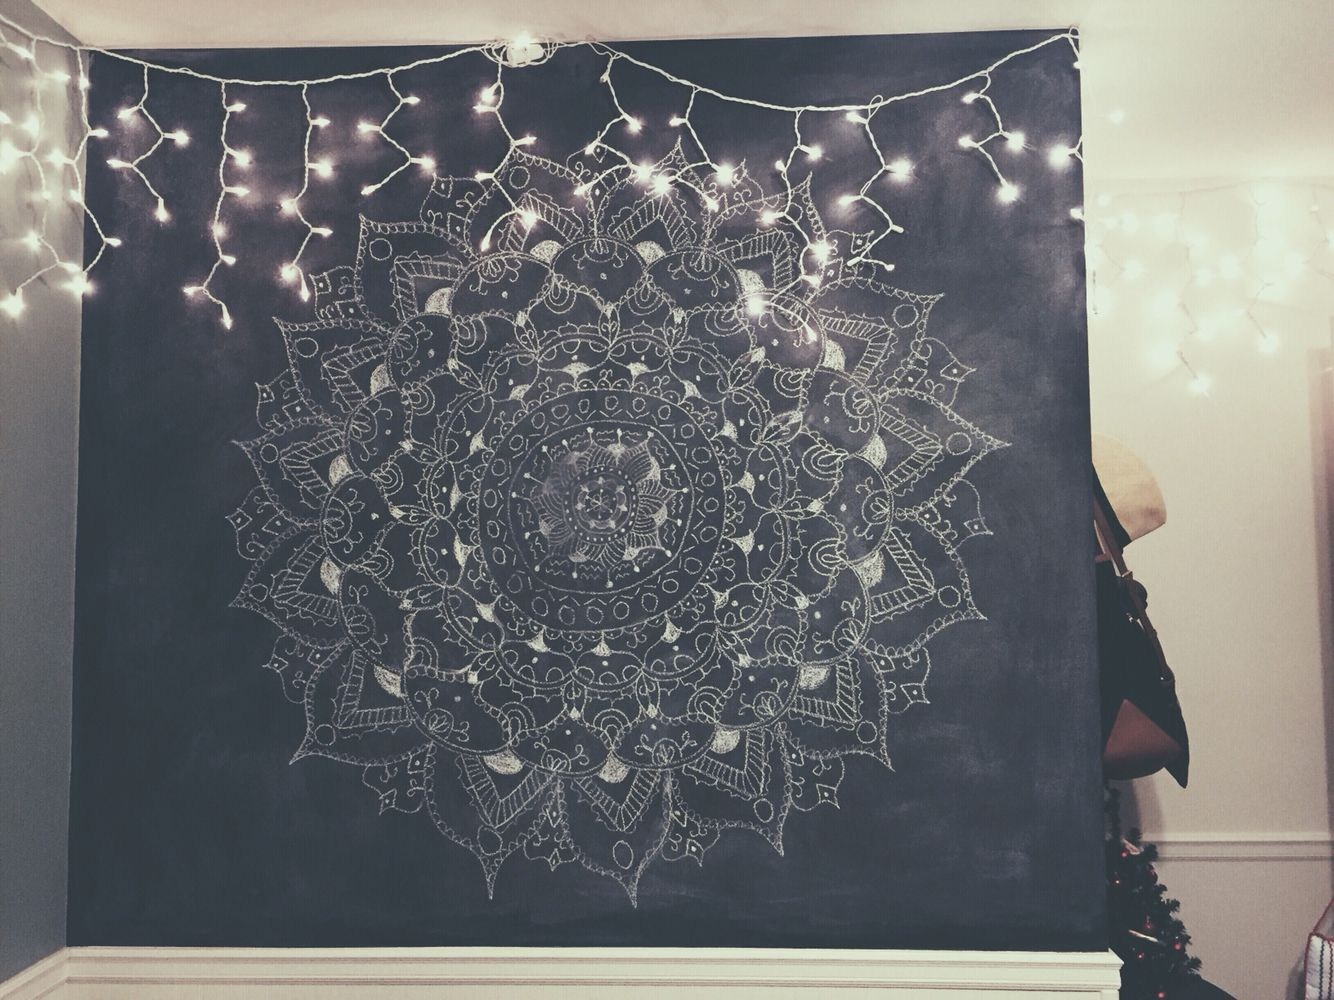 Henna Flower Drawing Chalkboard Wall Icicle Lights Bedroom Part 75